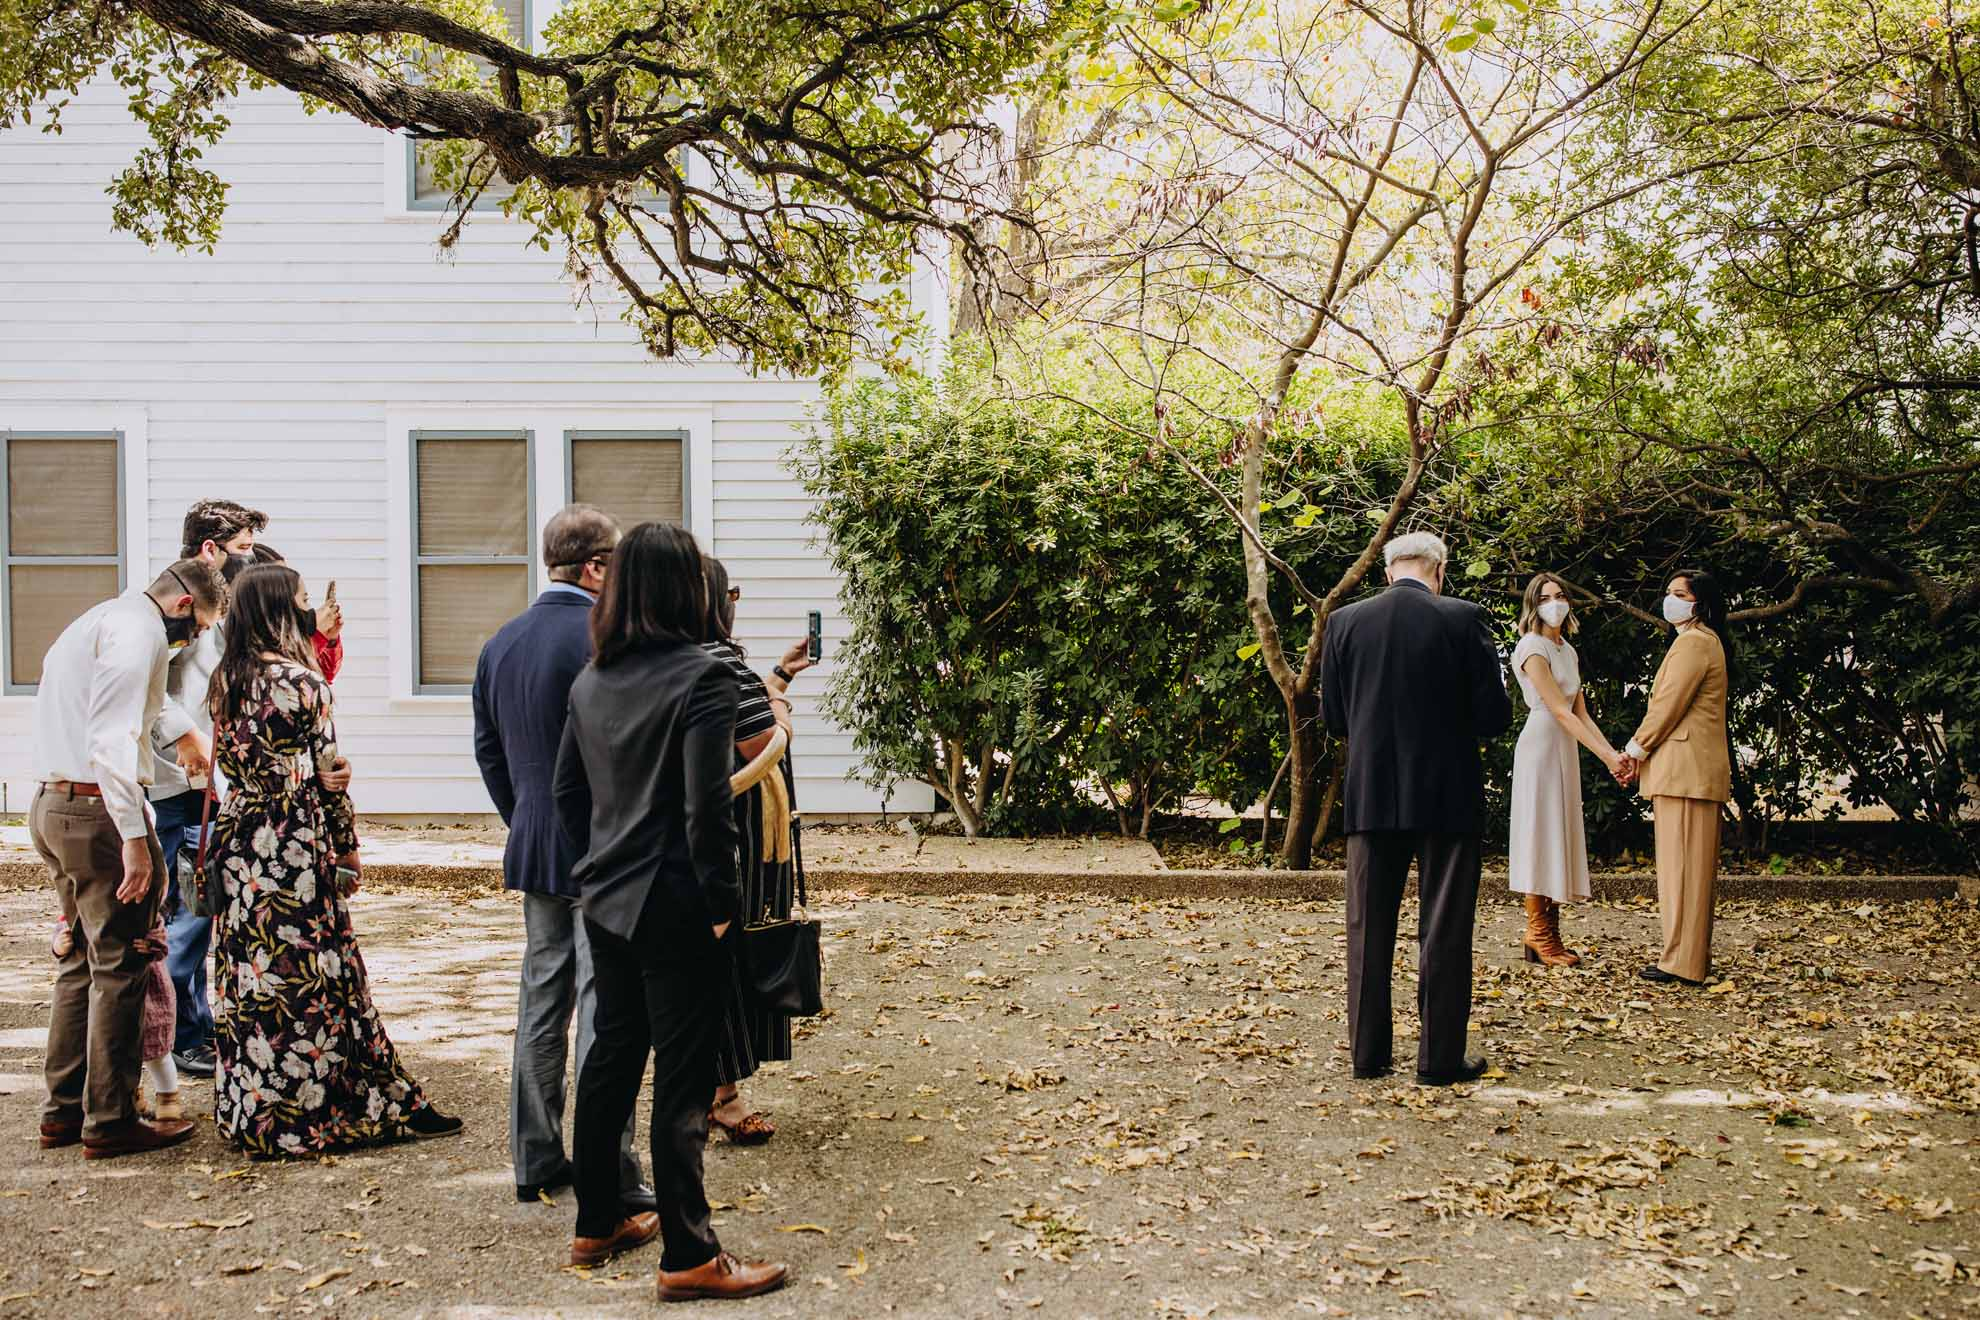 Leah Musen photography lesbian gay same-sex two brides mrs & mrs covid 19 elopement wedding Austin Texas USA Dancing With Her magazine (1)